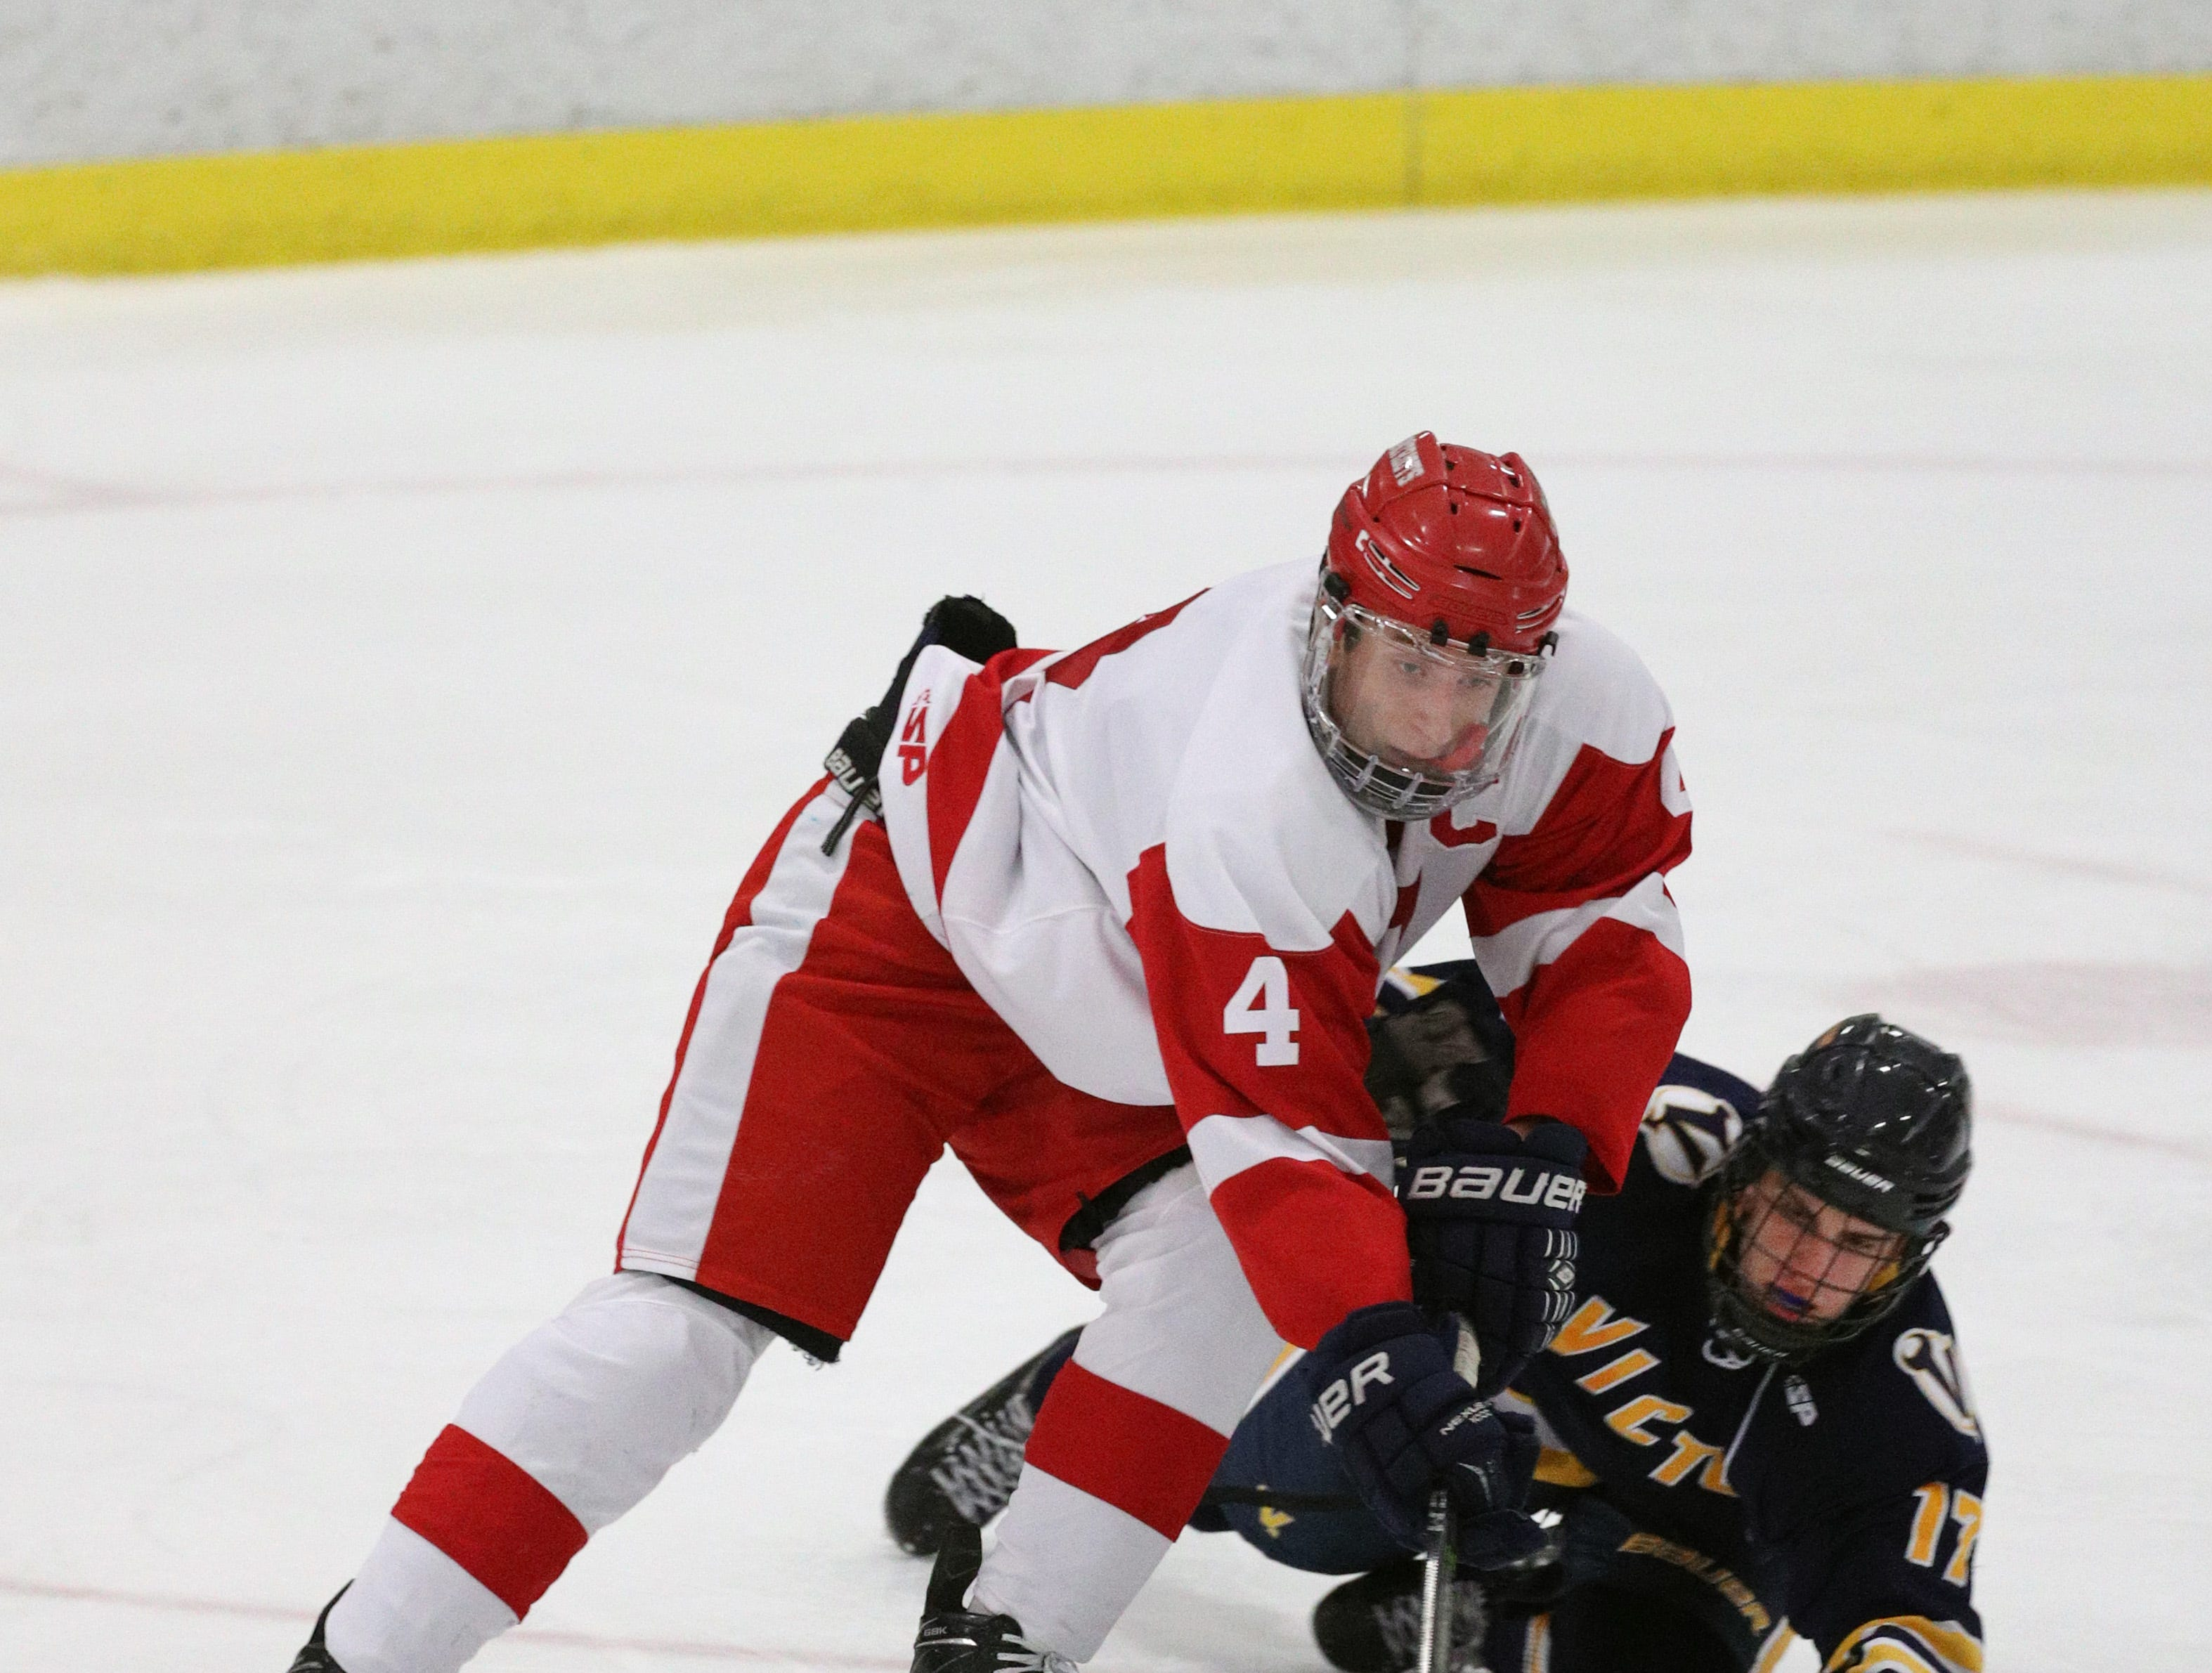 Penfield's Jack Schlifke tries to carry the puck around Roman Czornobil.